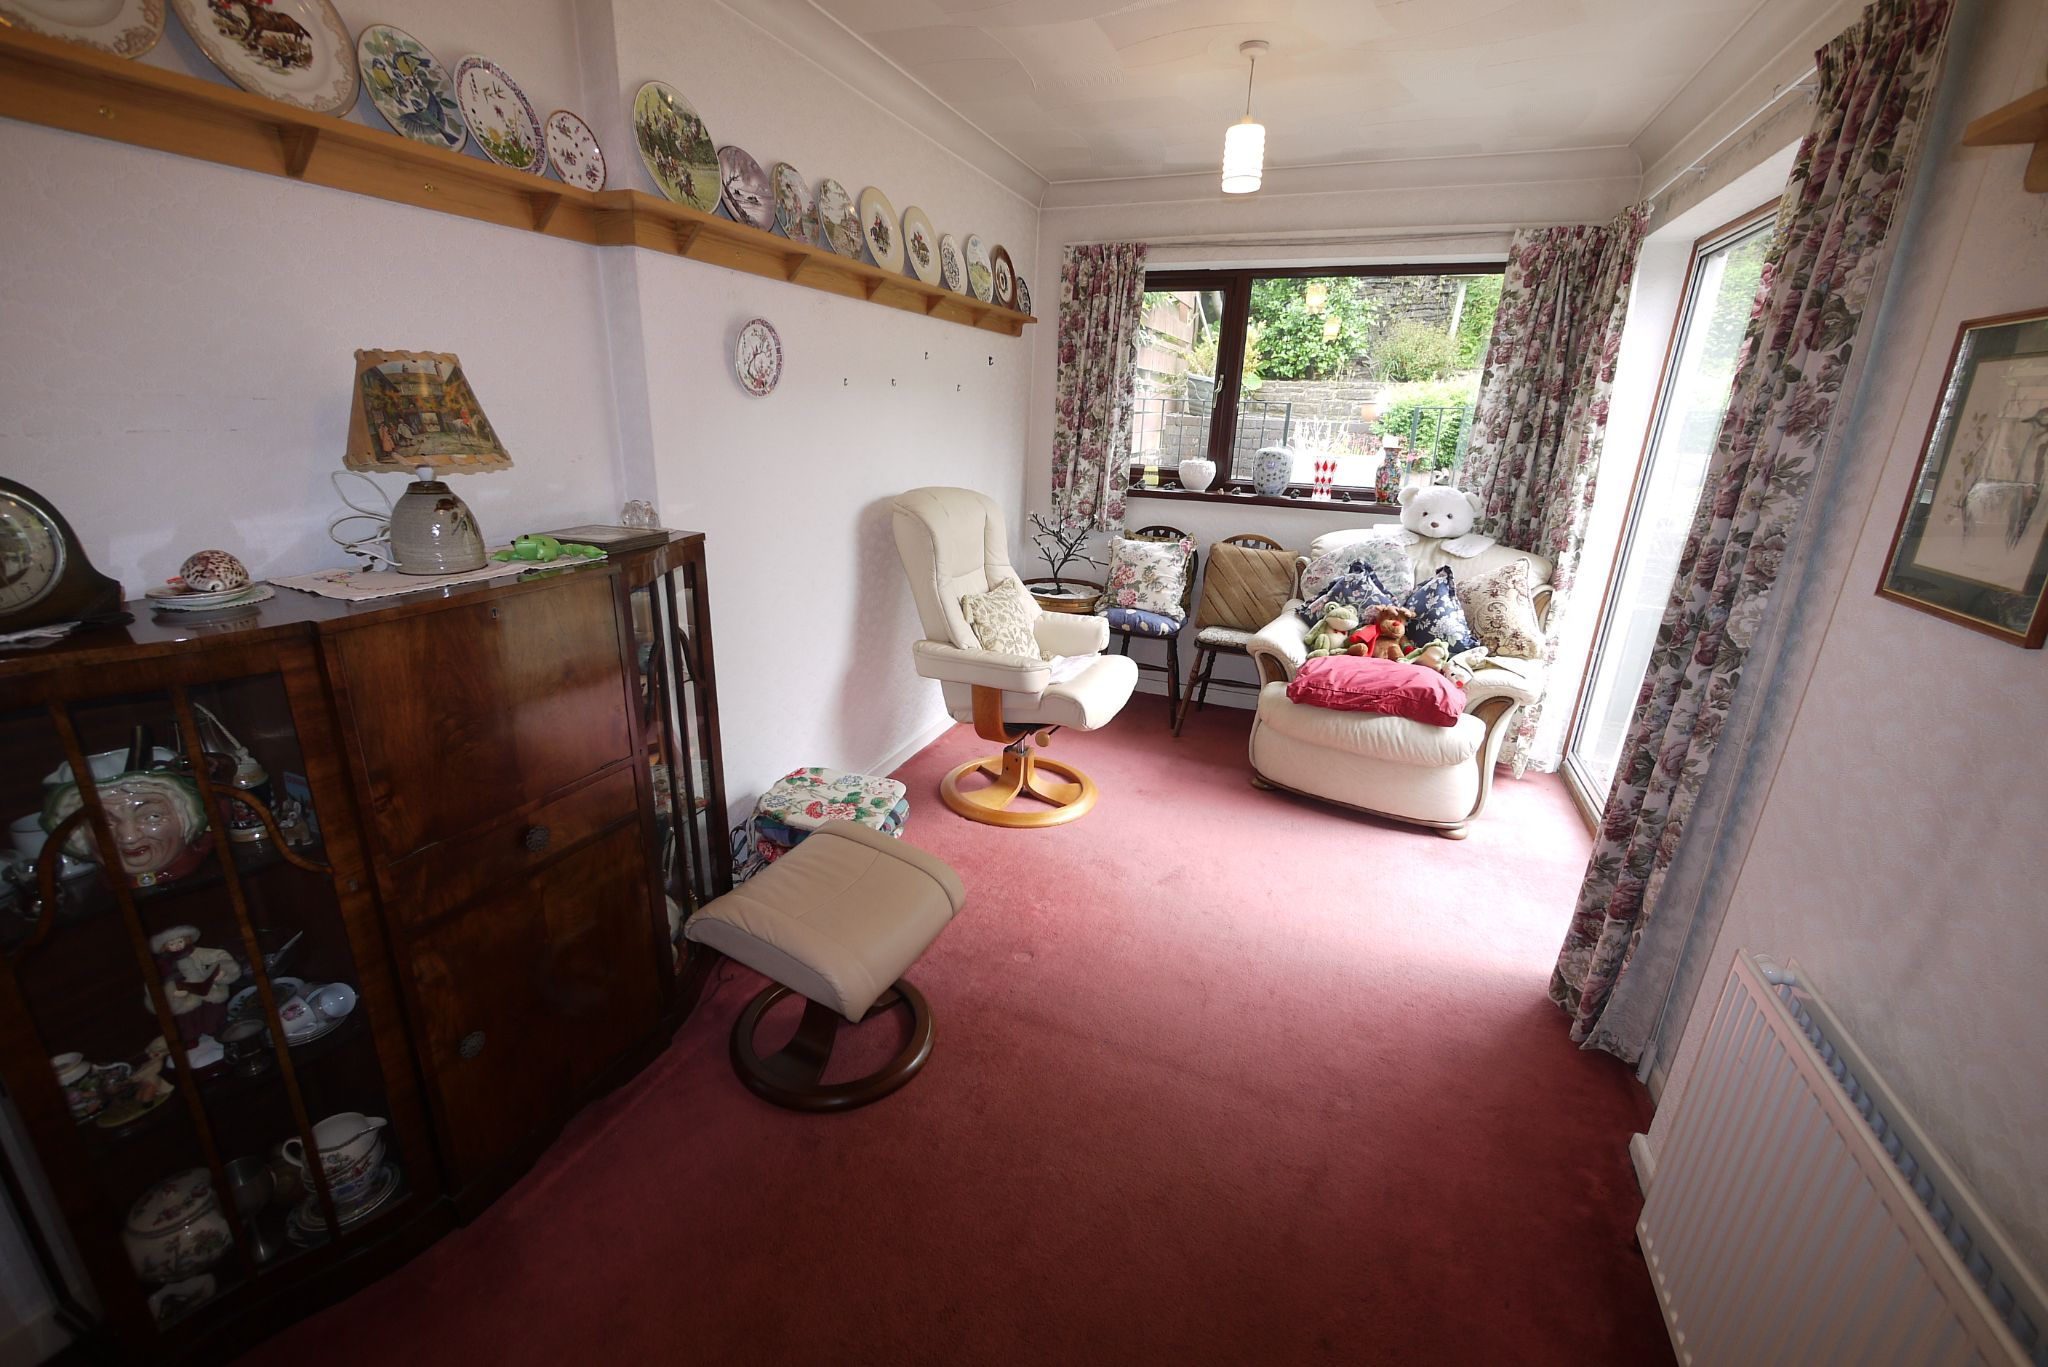 3 bedroom semi-detached bungalow SSTC in Brighouse - Photograph 5.